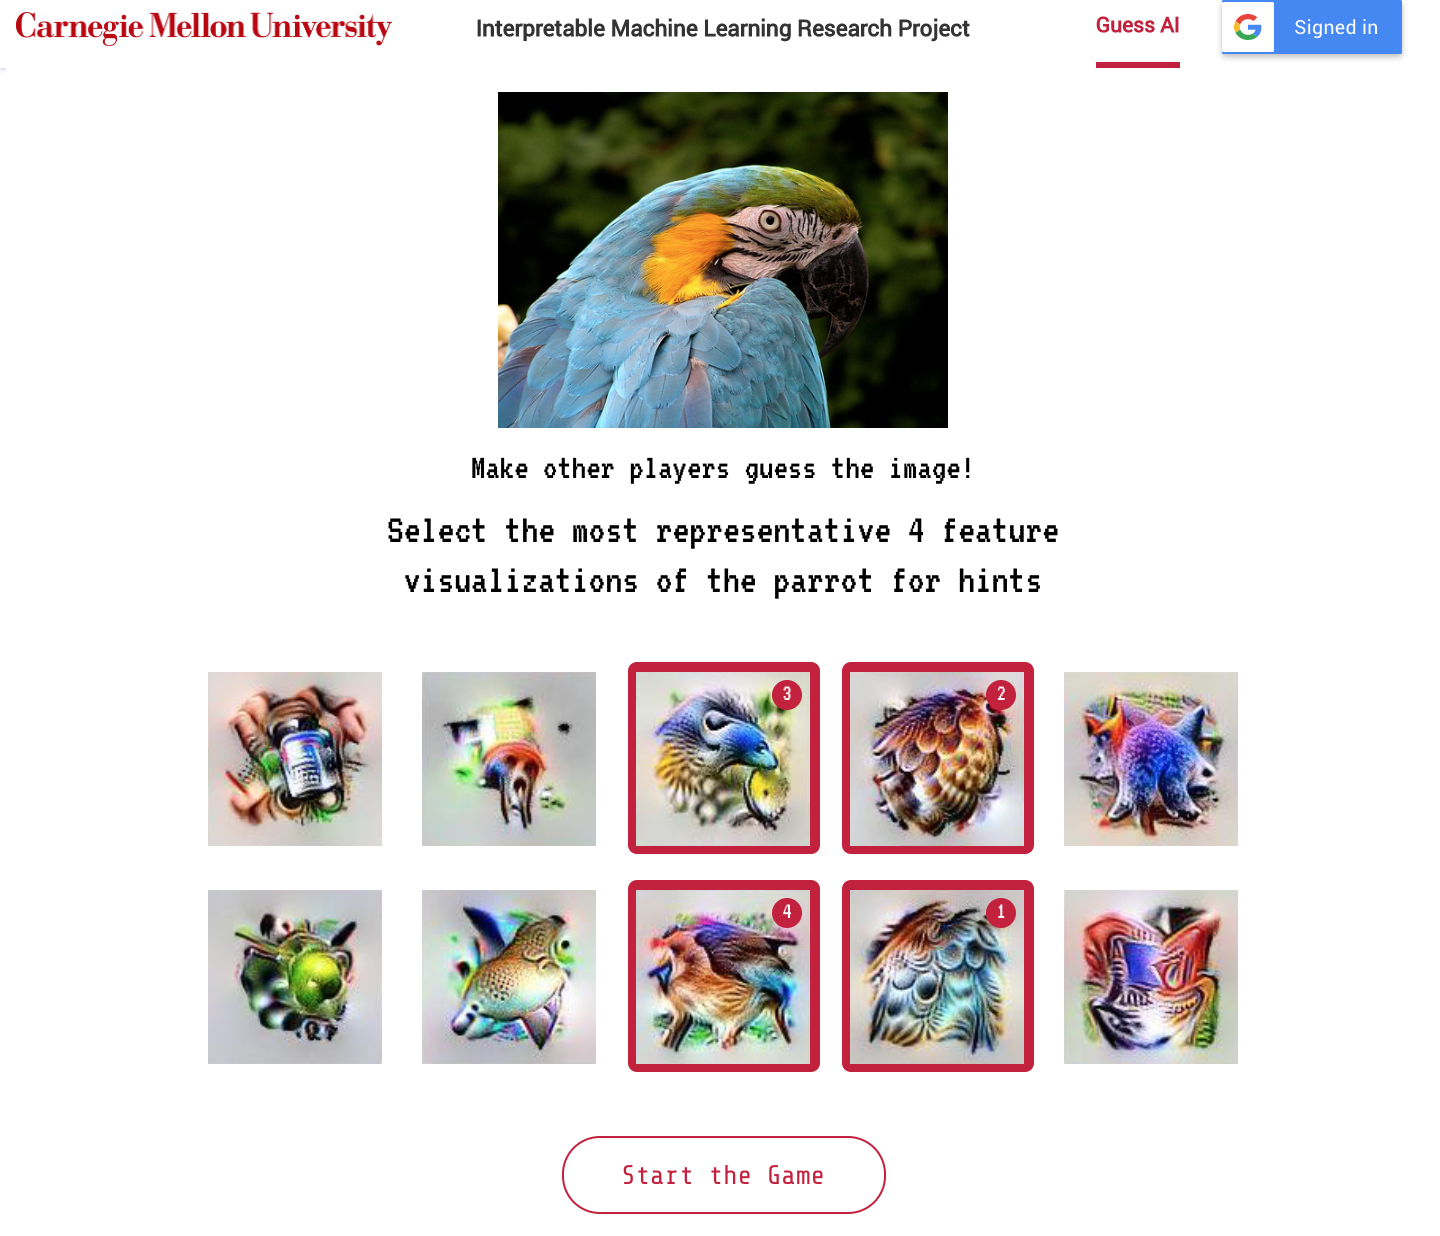 An image of a parrot. 10 visualizations of parrot features are shown and player selects top 4 to start the game.